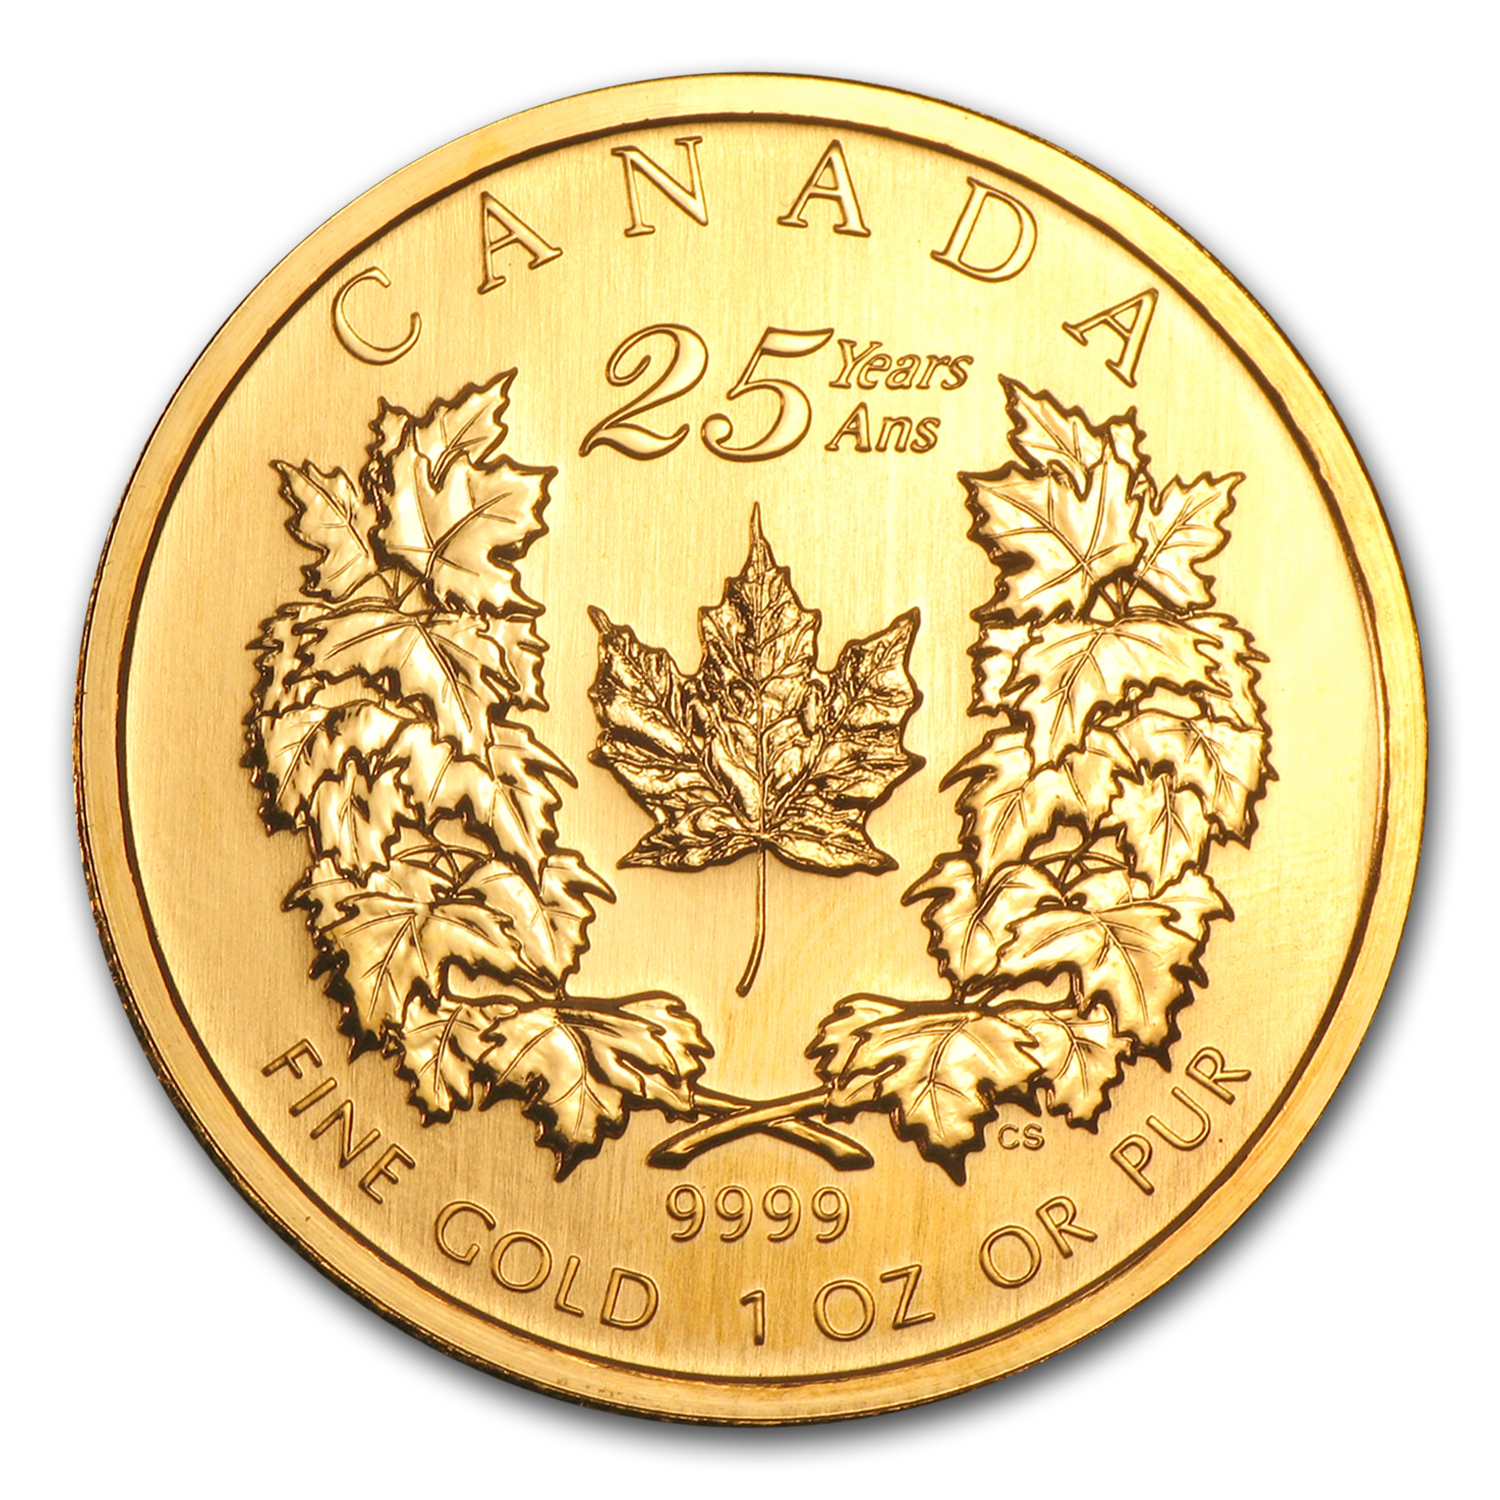 2004 Canada 1 oz Gold Maple Leaf BU (25th Anniversary)